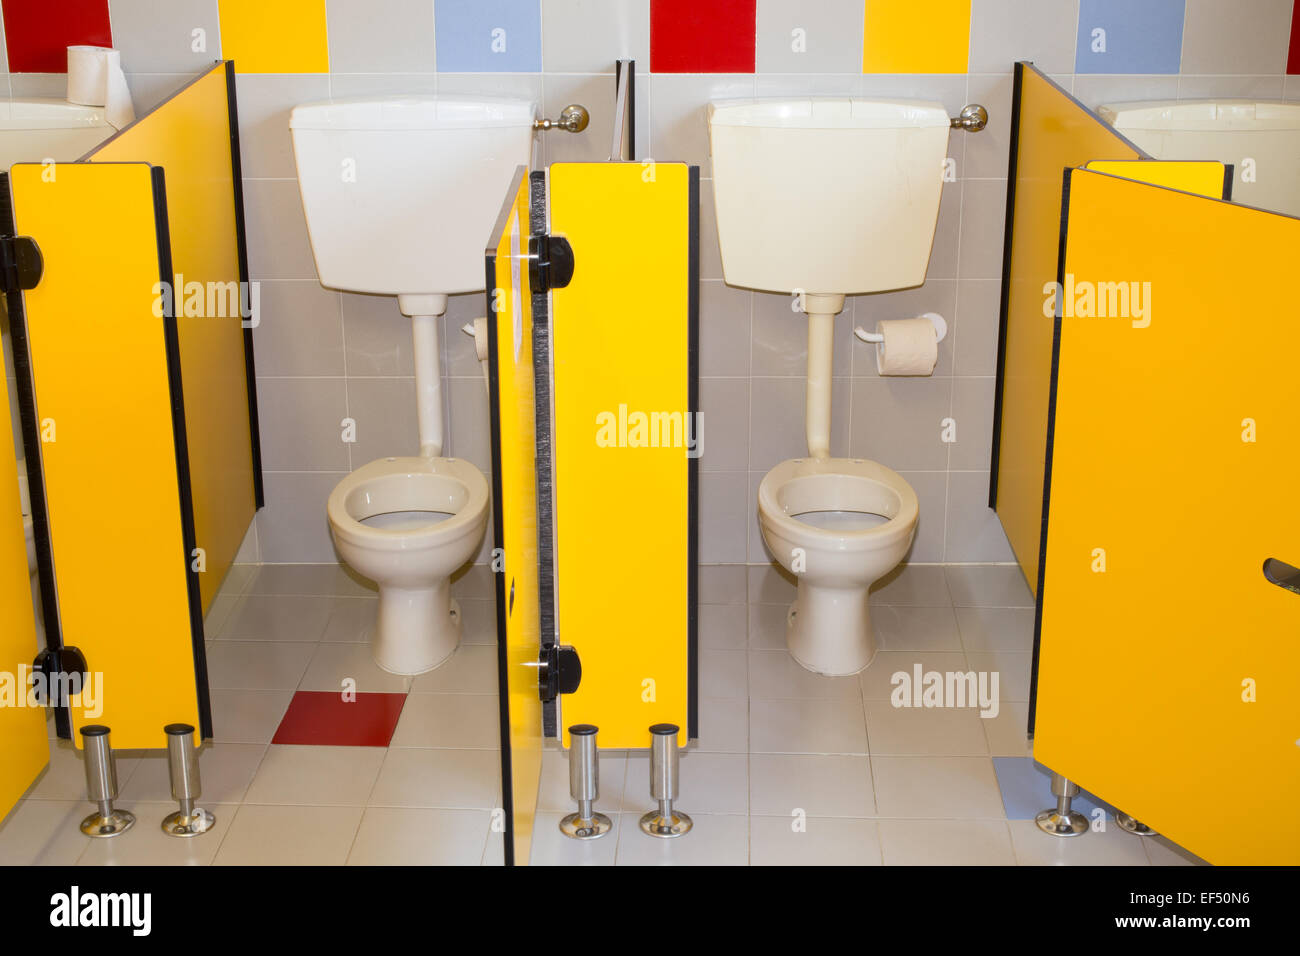 Toilet Seat For Child High Resolution Stock Photography